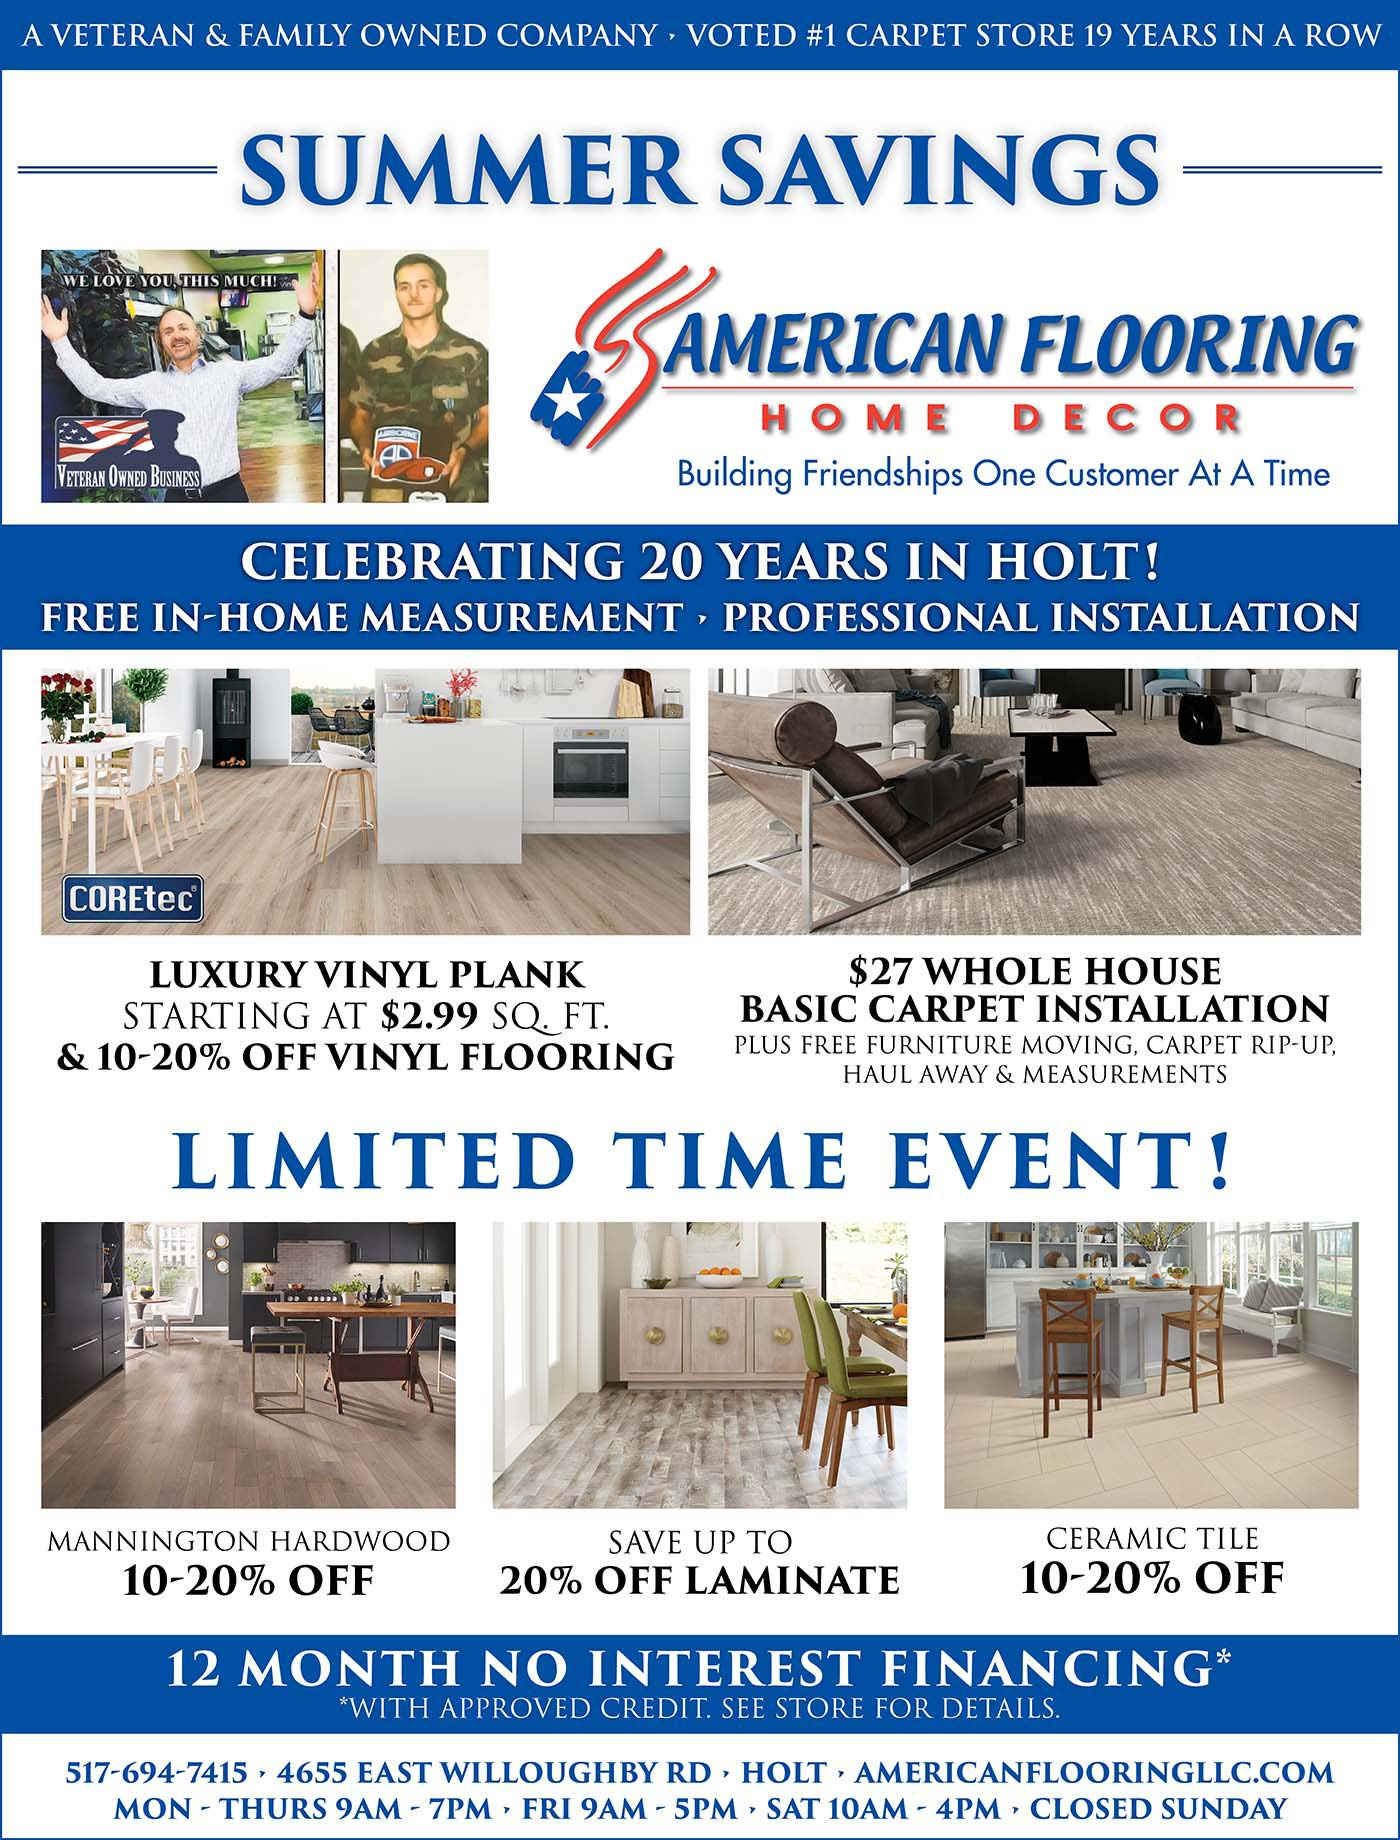 Summer Savings Going On Now at American Flooring Home Decor